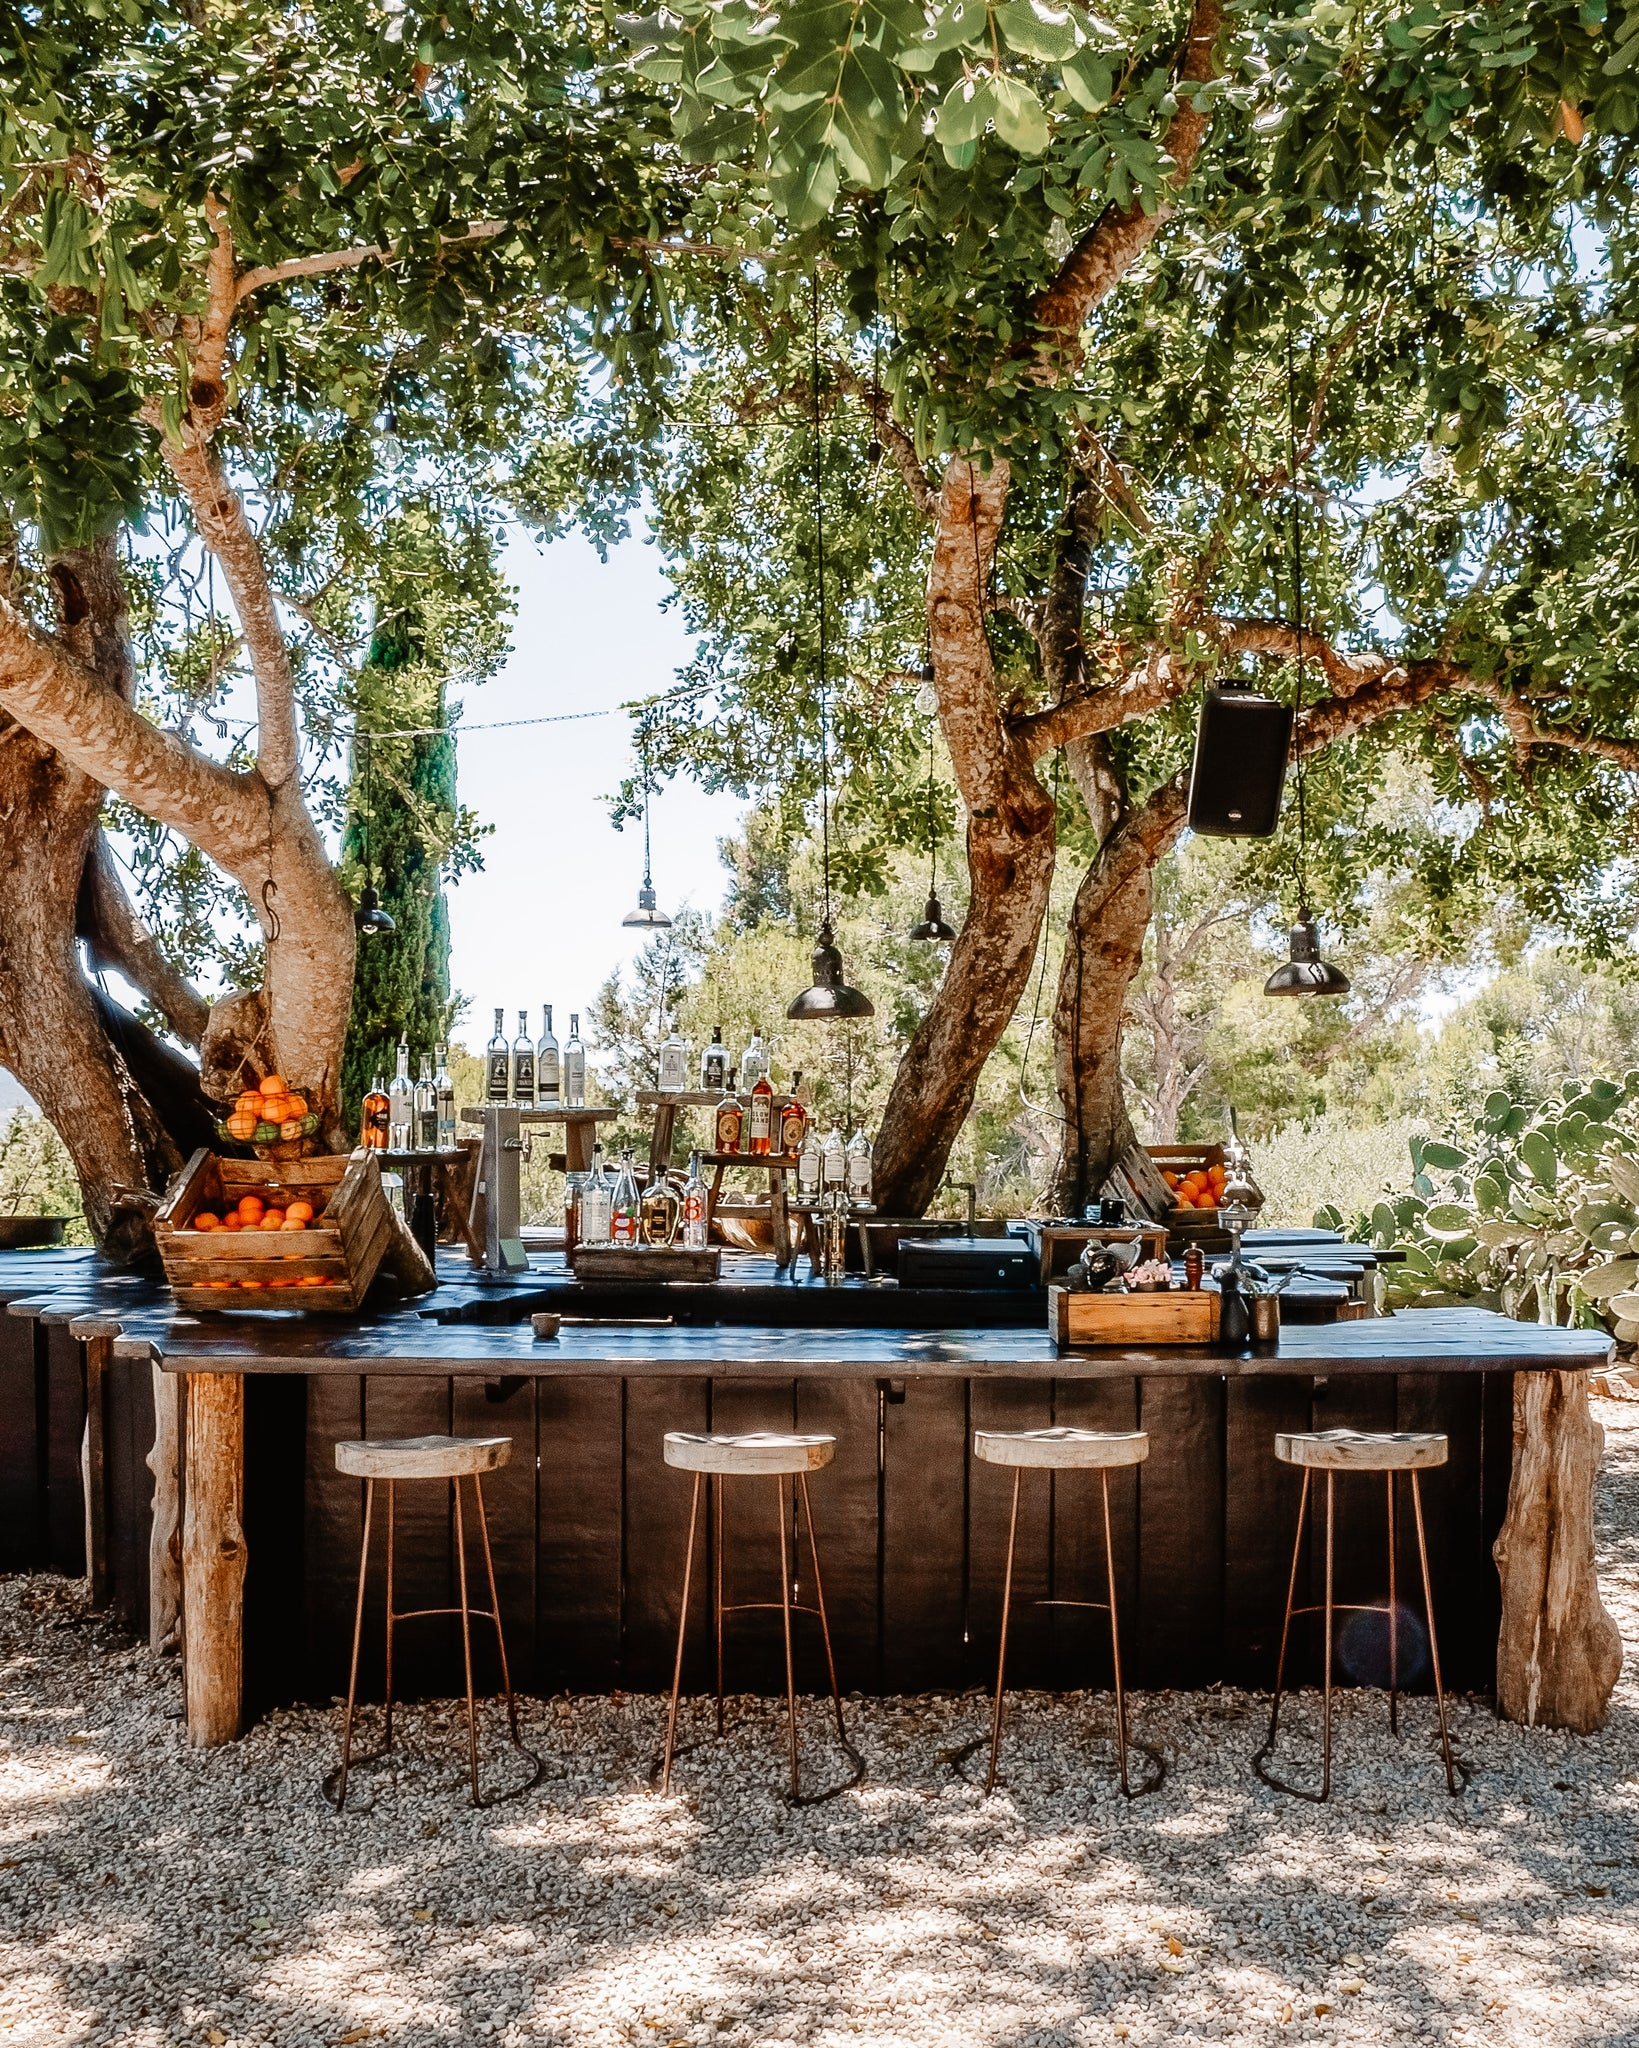 Travel Tour: A 200-year-old farmhouse stay in Ibiza